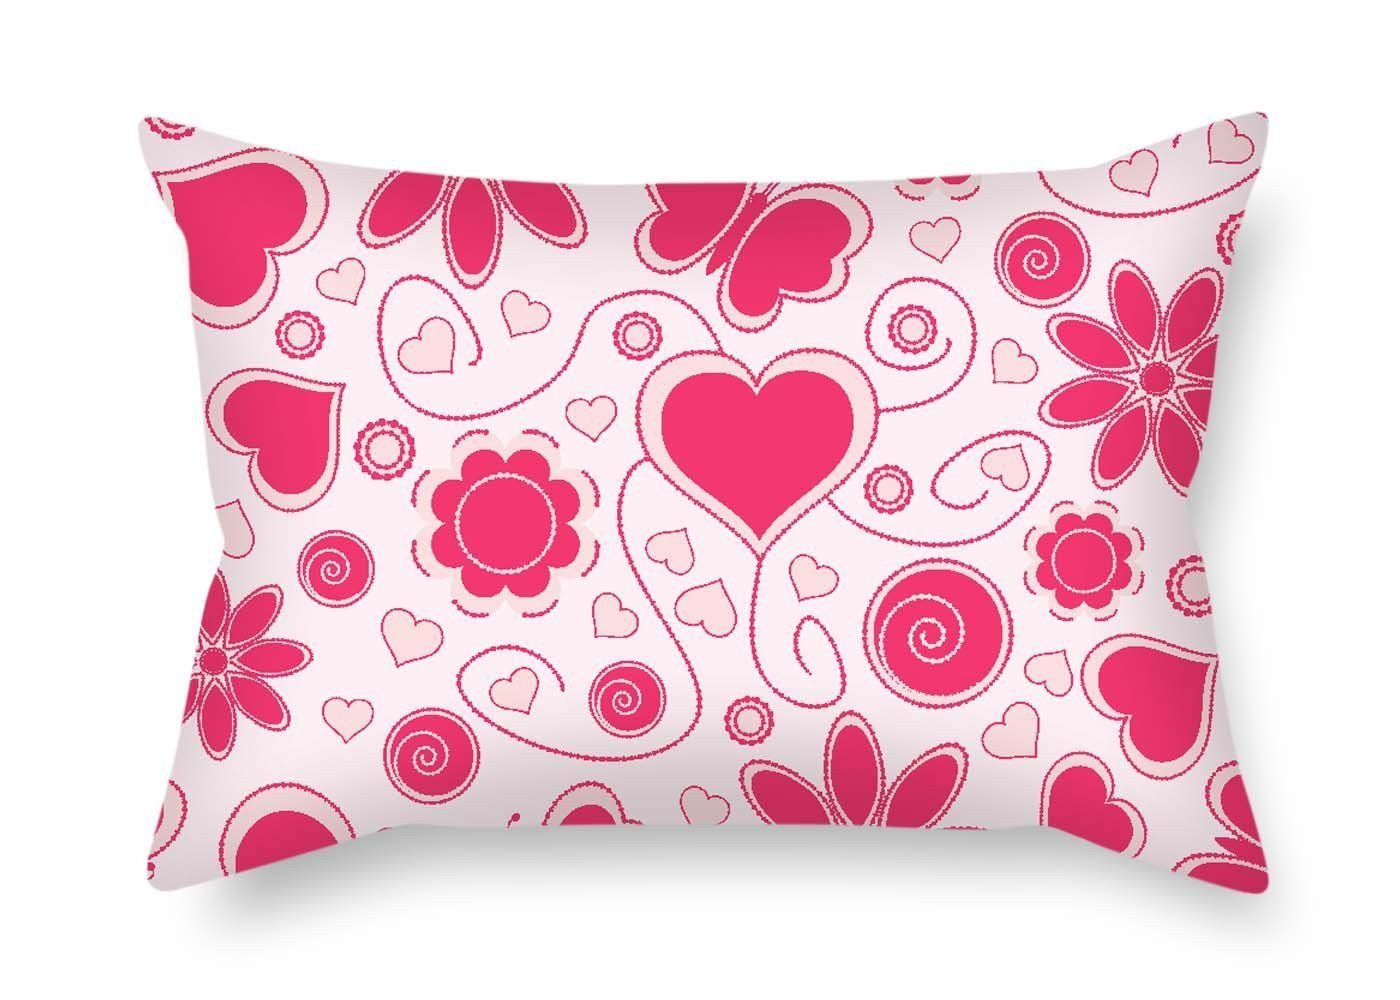 Lounge Chair for Teen Bedroom Fresh Amazon Love Throw Pillow Covers for Lounge Teens Girls